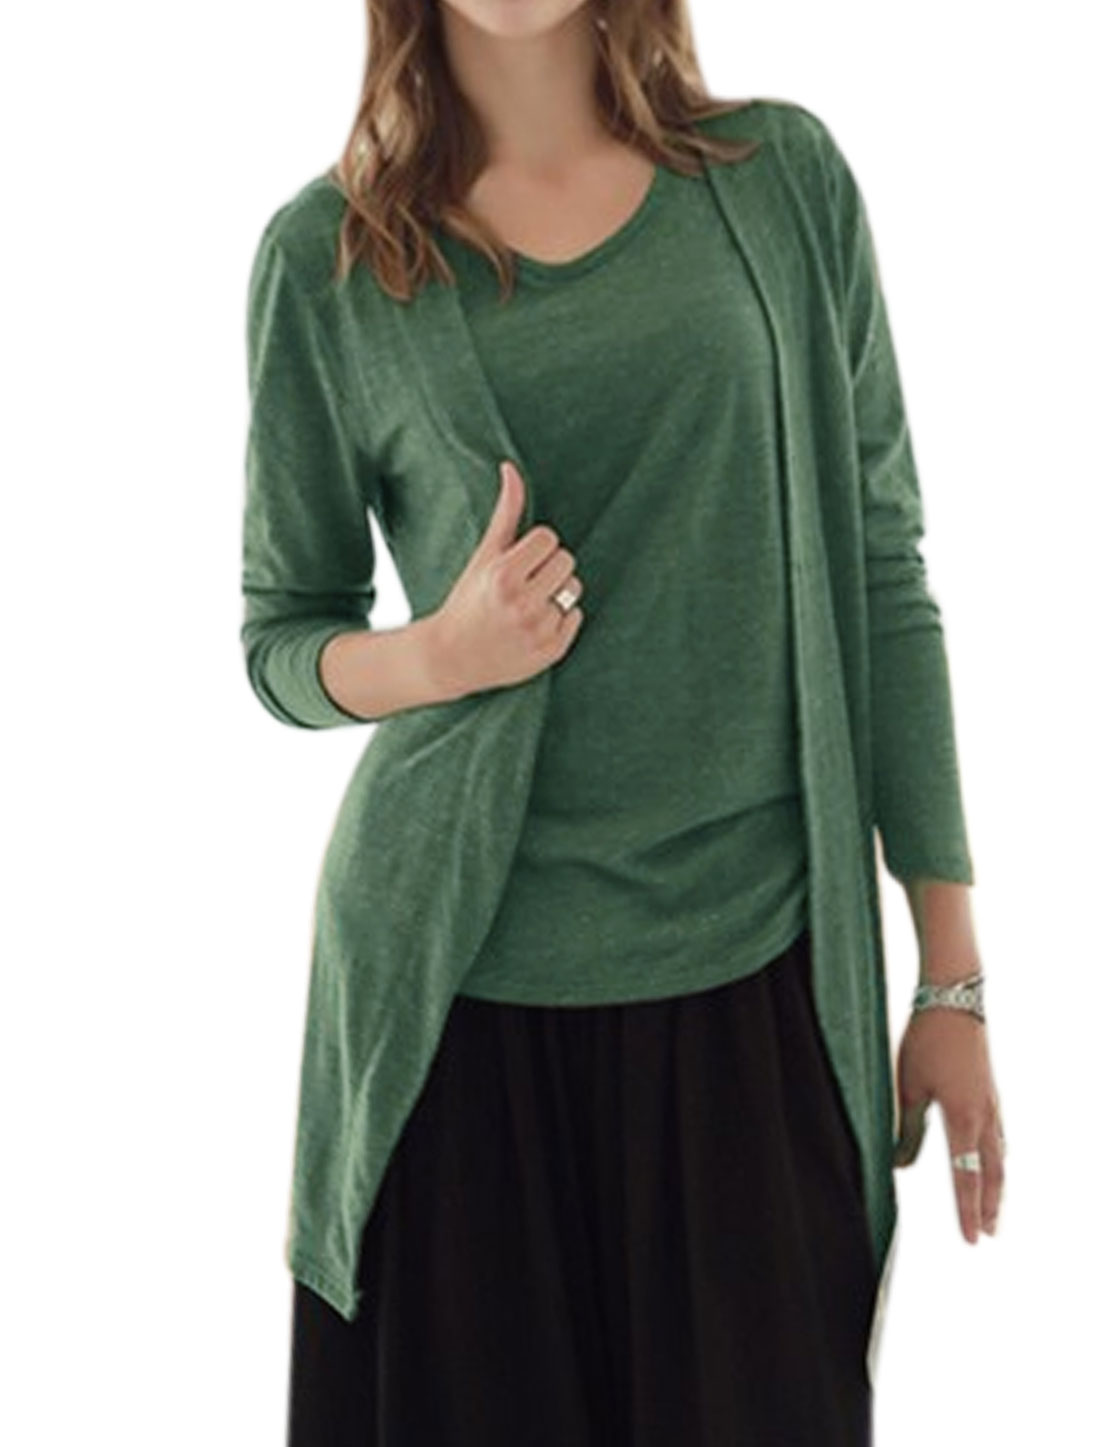 Lady Sleeveless Top w Open Front Longline Cardigan Sets Green XS